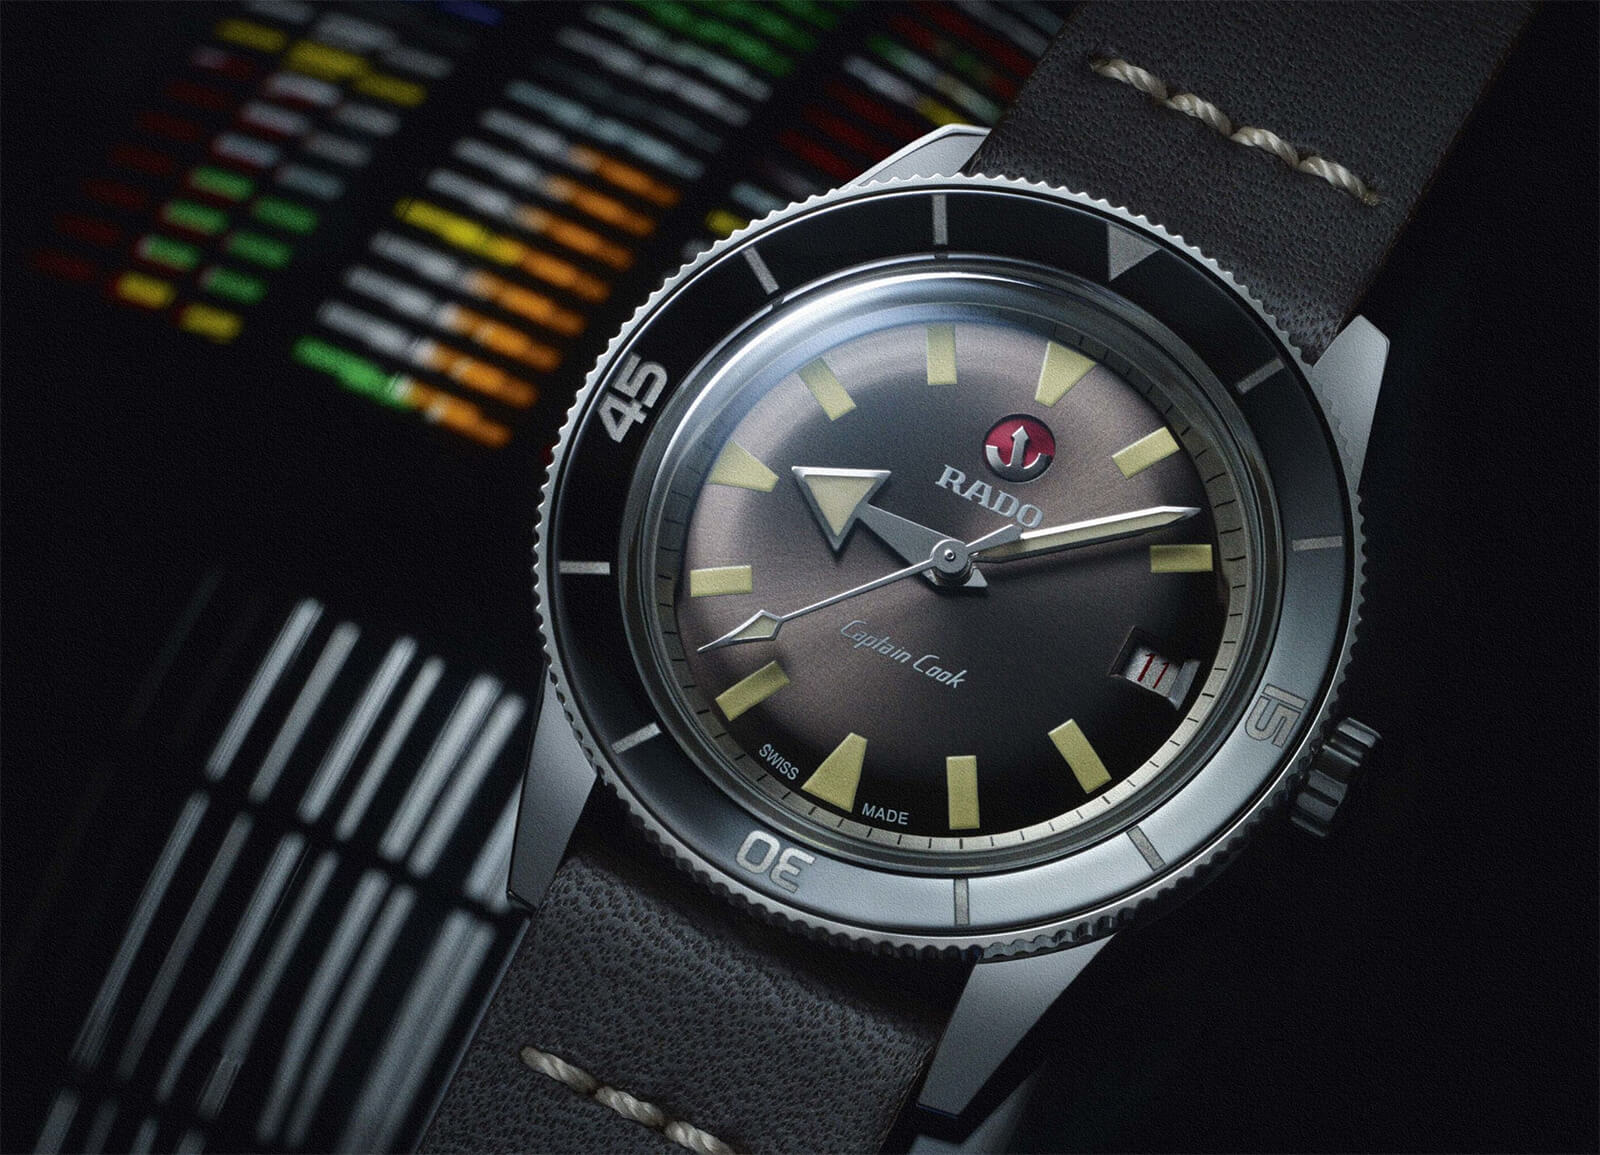 Rado HyperChrome Captain Cook Watch